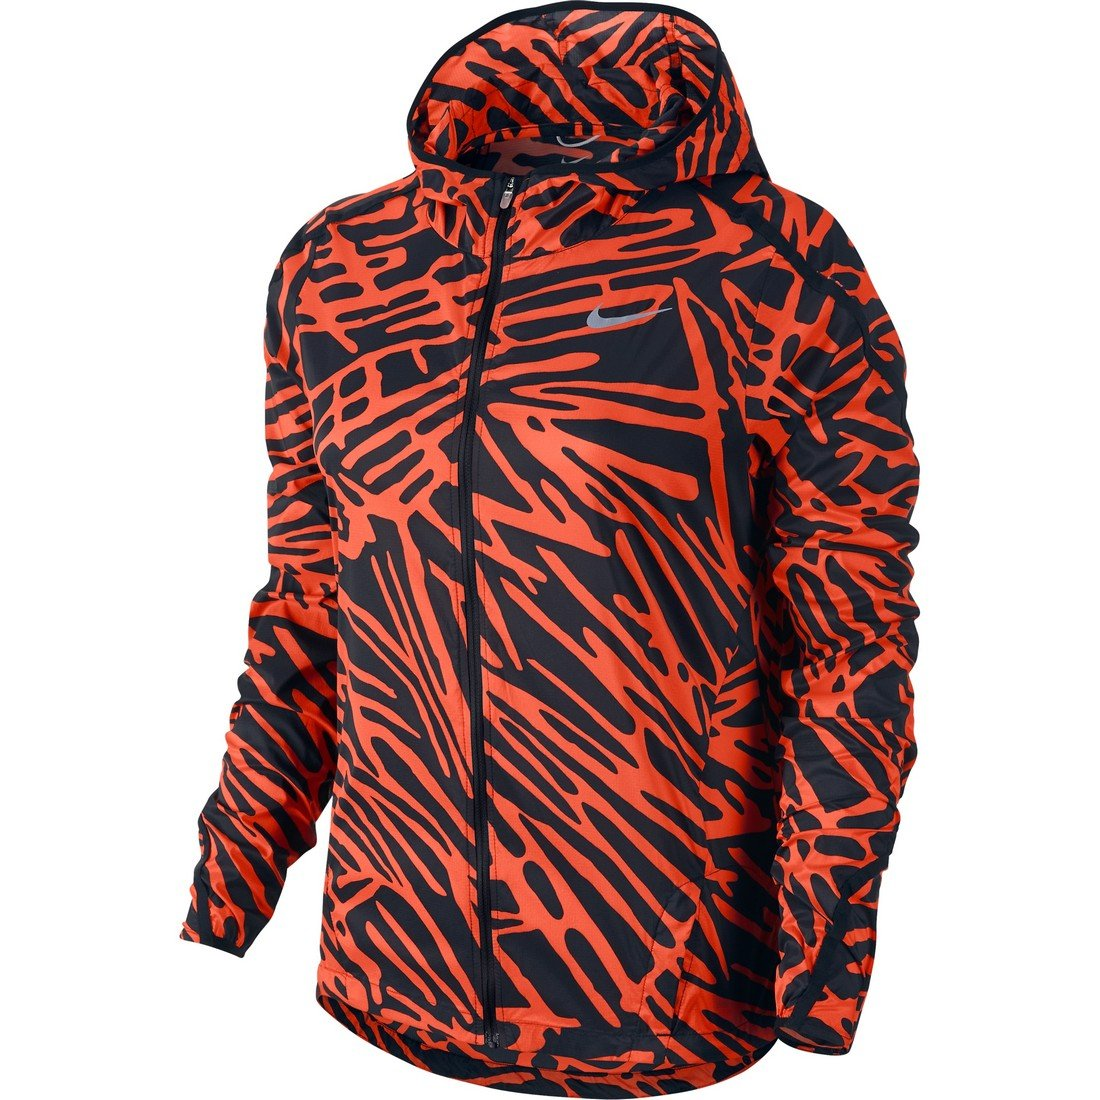 NikeレディースImpossibly Light Palm Print Running Jacket Medium Light Crimson/Black B01AABMIGW